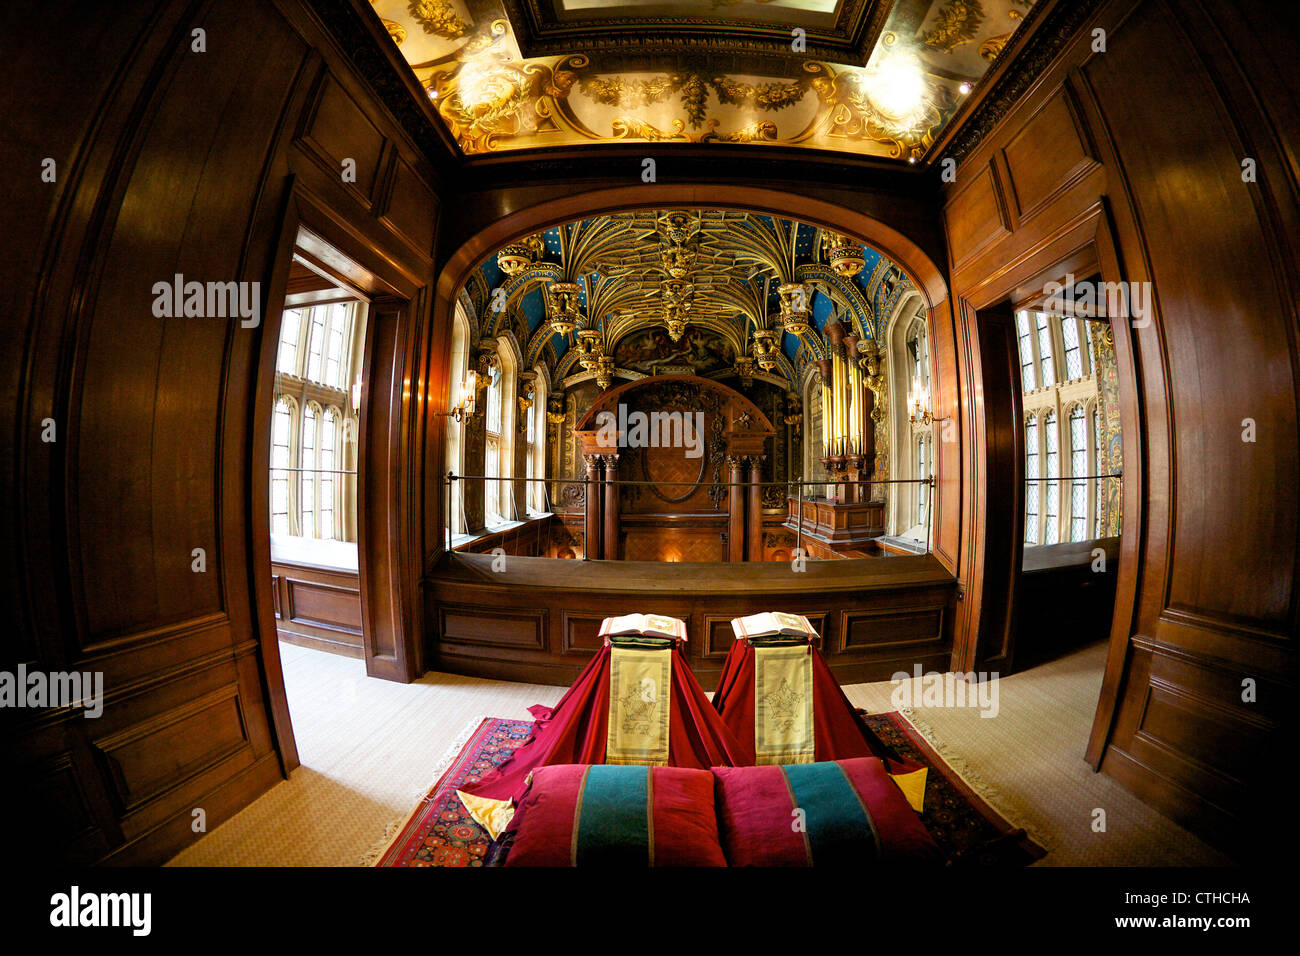 Royal Pew from the 1520's built by Cardinal Wolsey, Chapel Royal, Hampton Court Palace, London, Surrey, England, - Stock Image